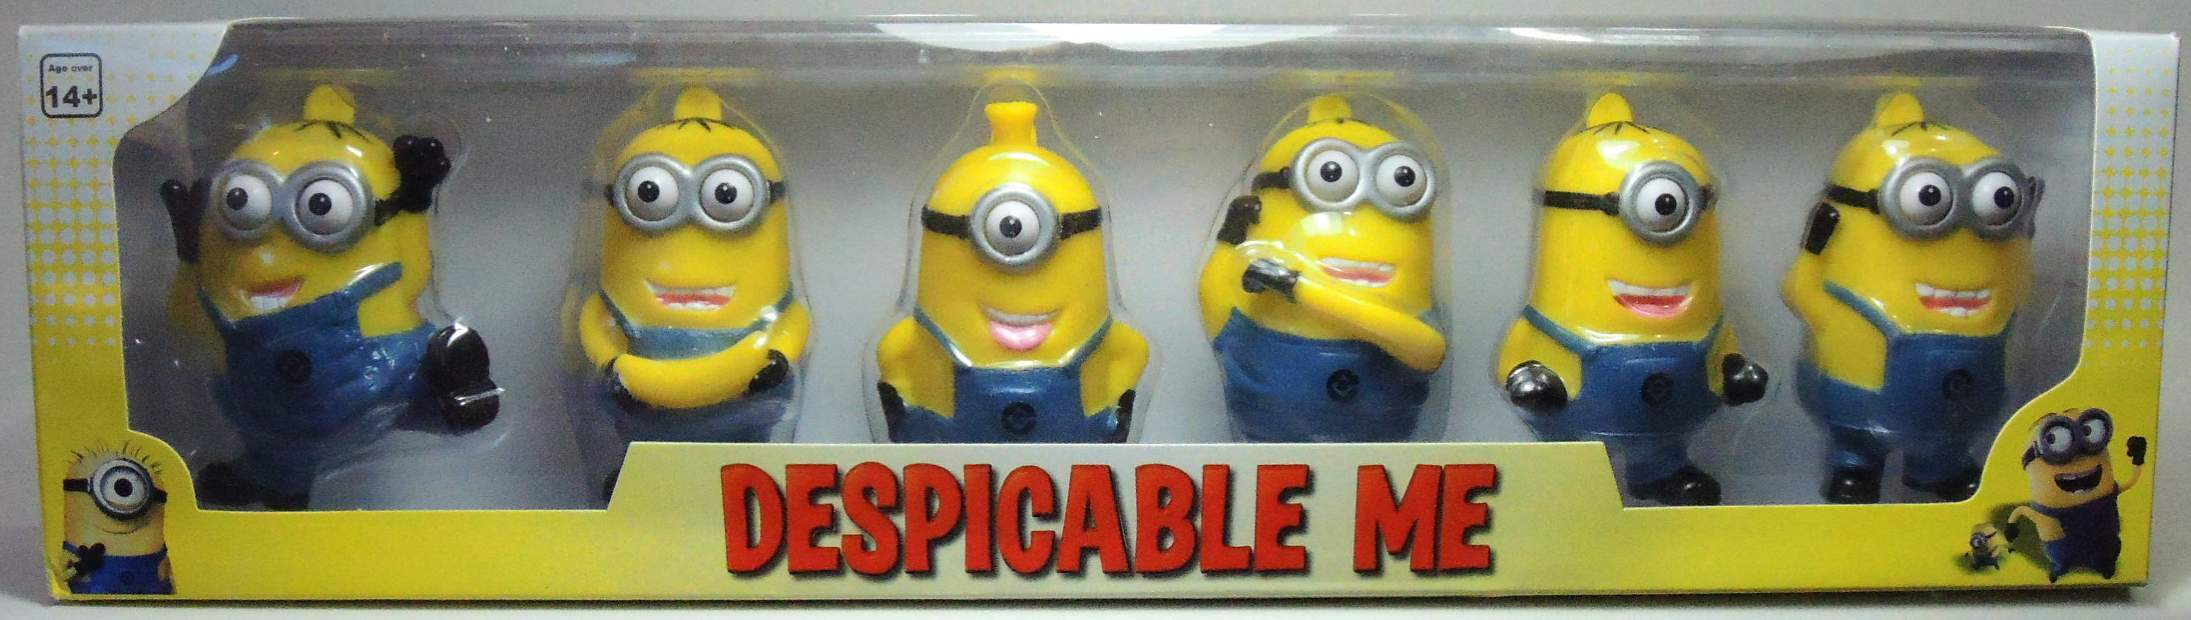 Despicable Me - Minions 6-pack Boxed Set Tideway, Despicable Me, Action Figures, 2013, animated, movie